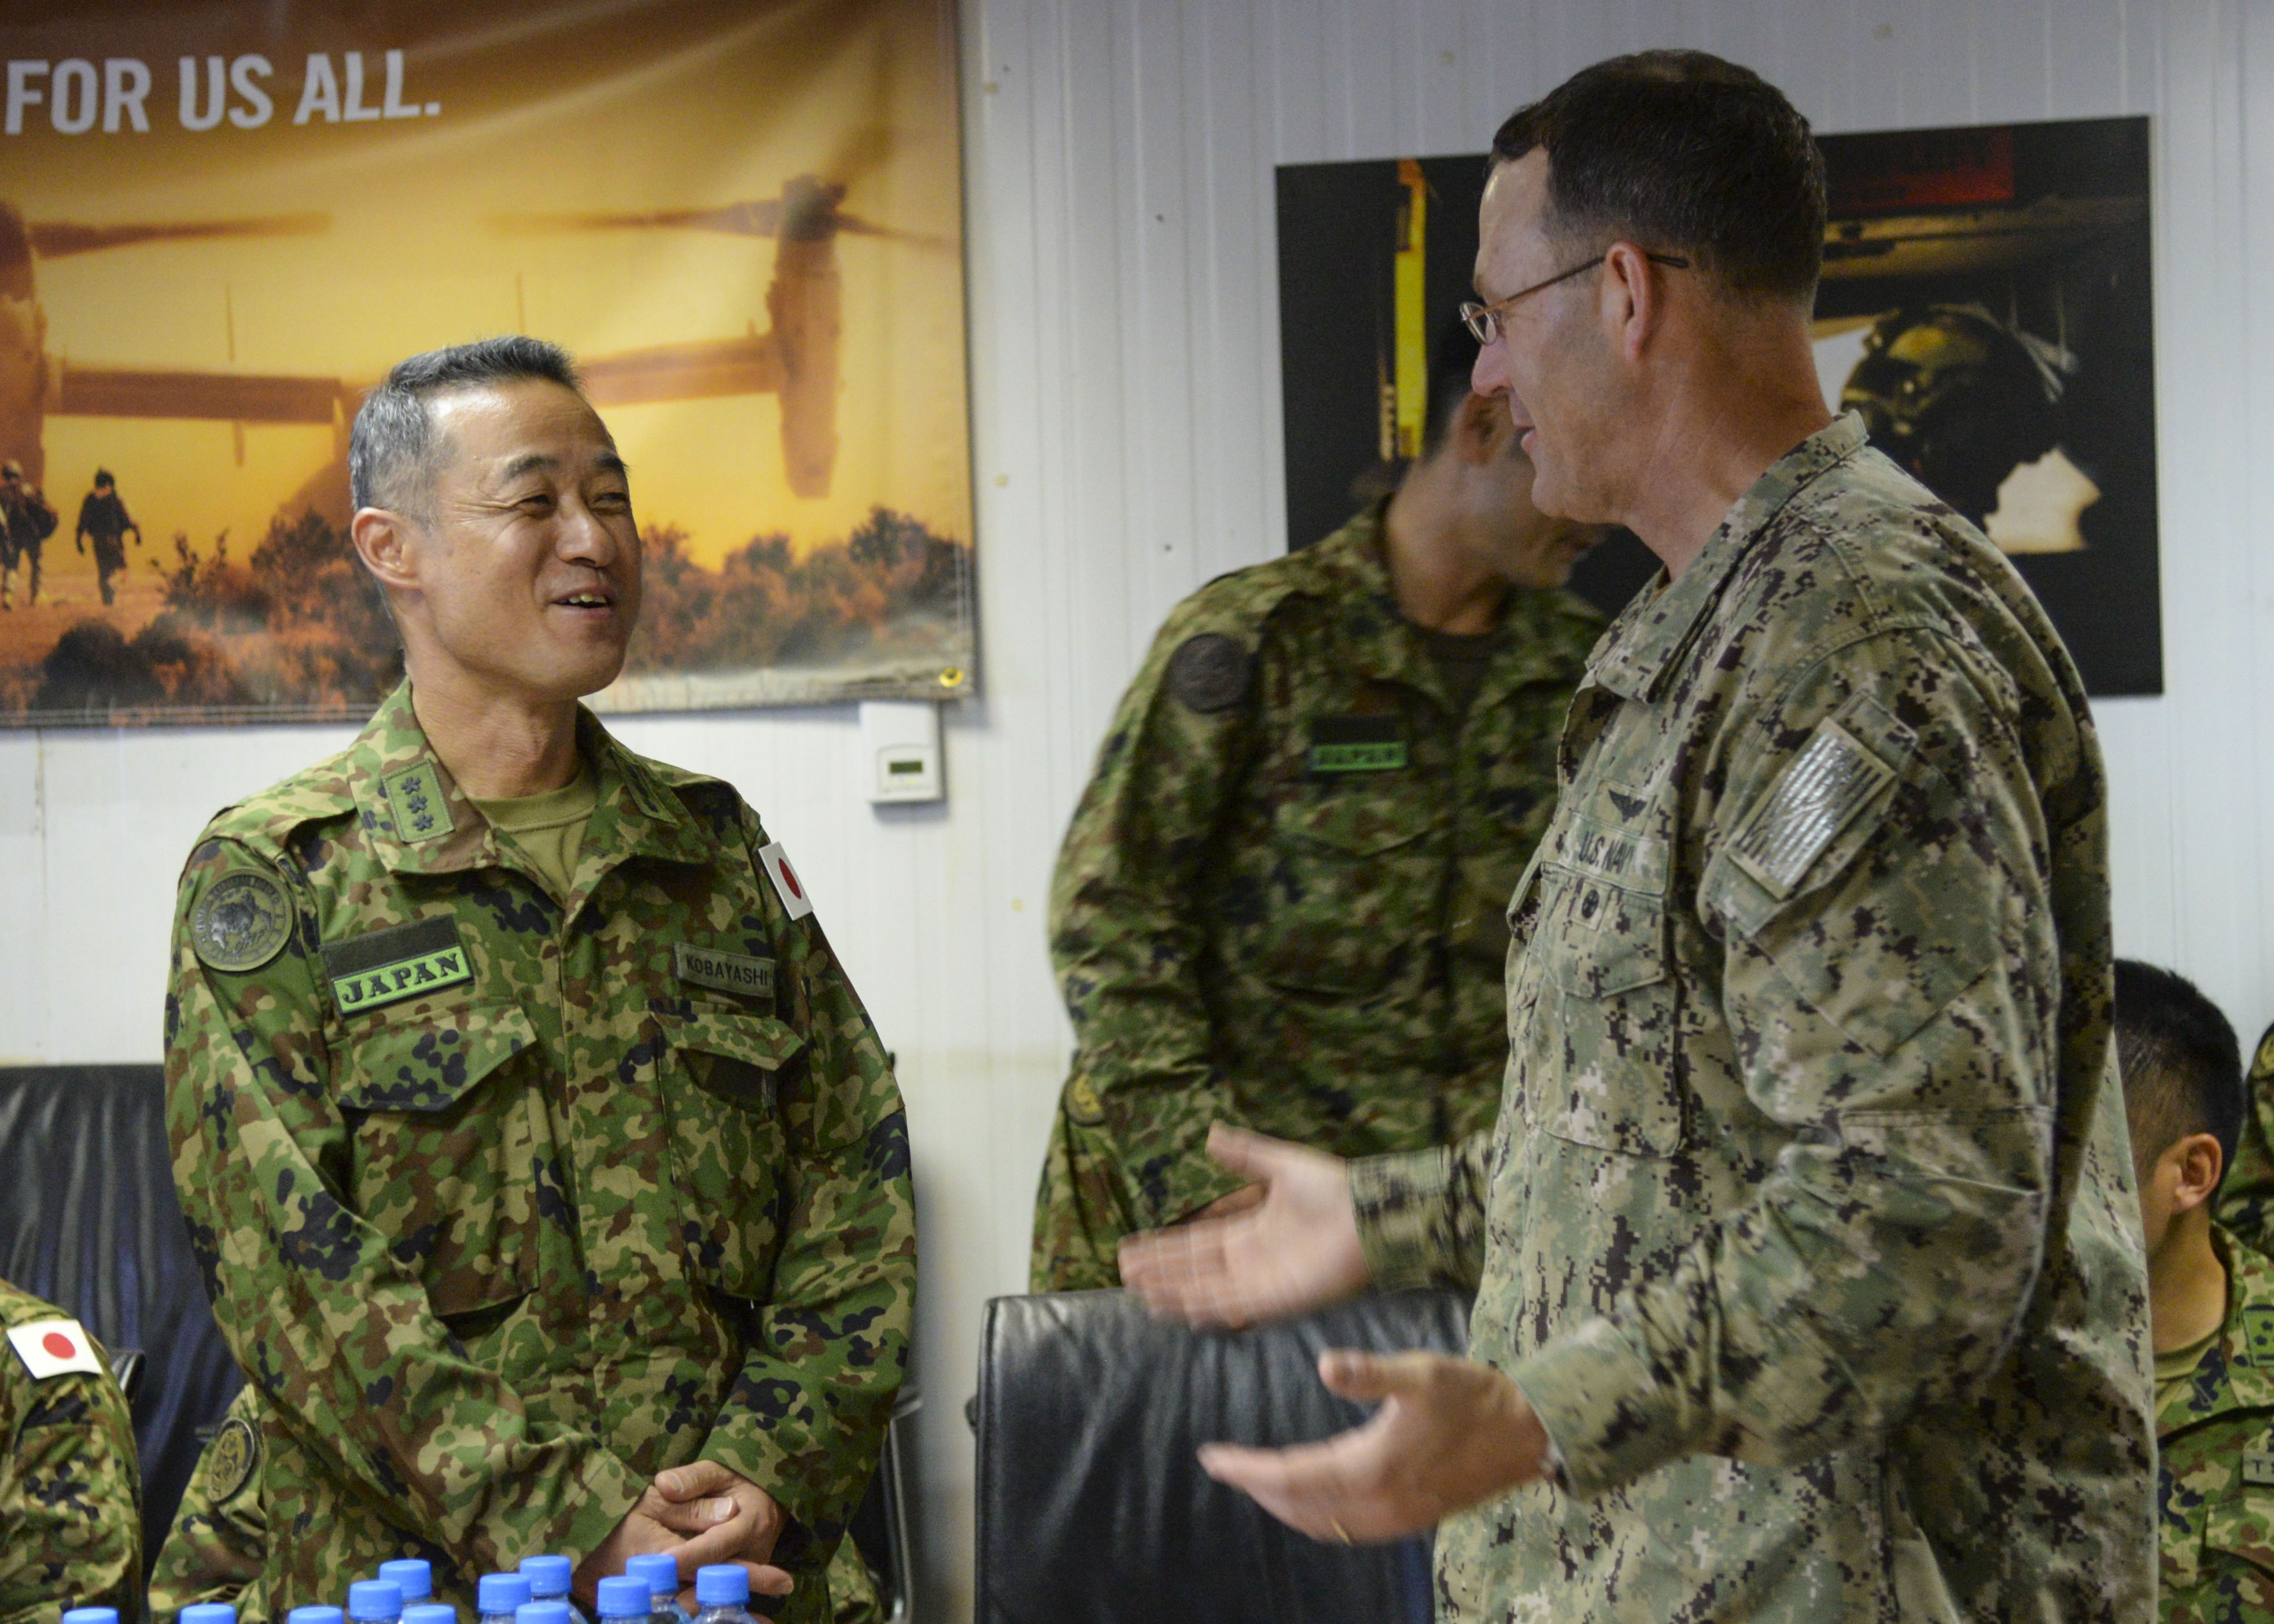 Combined Joint Task Force-Horn of Africa Deputy Commander Rear Adm. William Wheeler talks with Lt. Gen. Shigeru Kobayashi, Commander of the Japan Ground Self-Defense Force's Central Readiness Force at Camp Lemonnier, Djibouti, Aug. 27, 2016.  Japanese and CJTF-HOA service members met for a tabletop exercise to discuss how they can support each other in an event involving the evacuation of Americans or Japanese citizens from a hostile location in Africa. During the exercise, both forces discussed route planning, logistics, equipment maintenance, how military personnel would be involved, medical support and use of air and ground transportation for evacuees. The plans also examined for their strengths and weaknesses and reassessed the movement of evacuees to safety. (U.S. Air Force photo by Staff Sgt. Benjamin Raughton/Released)